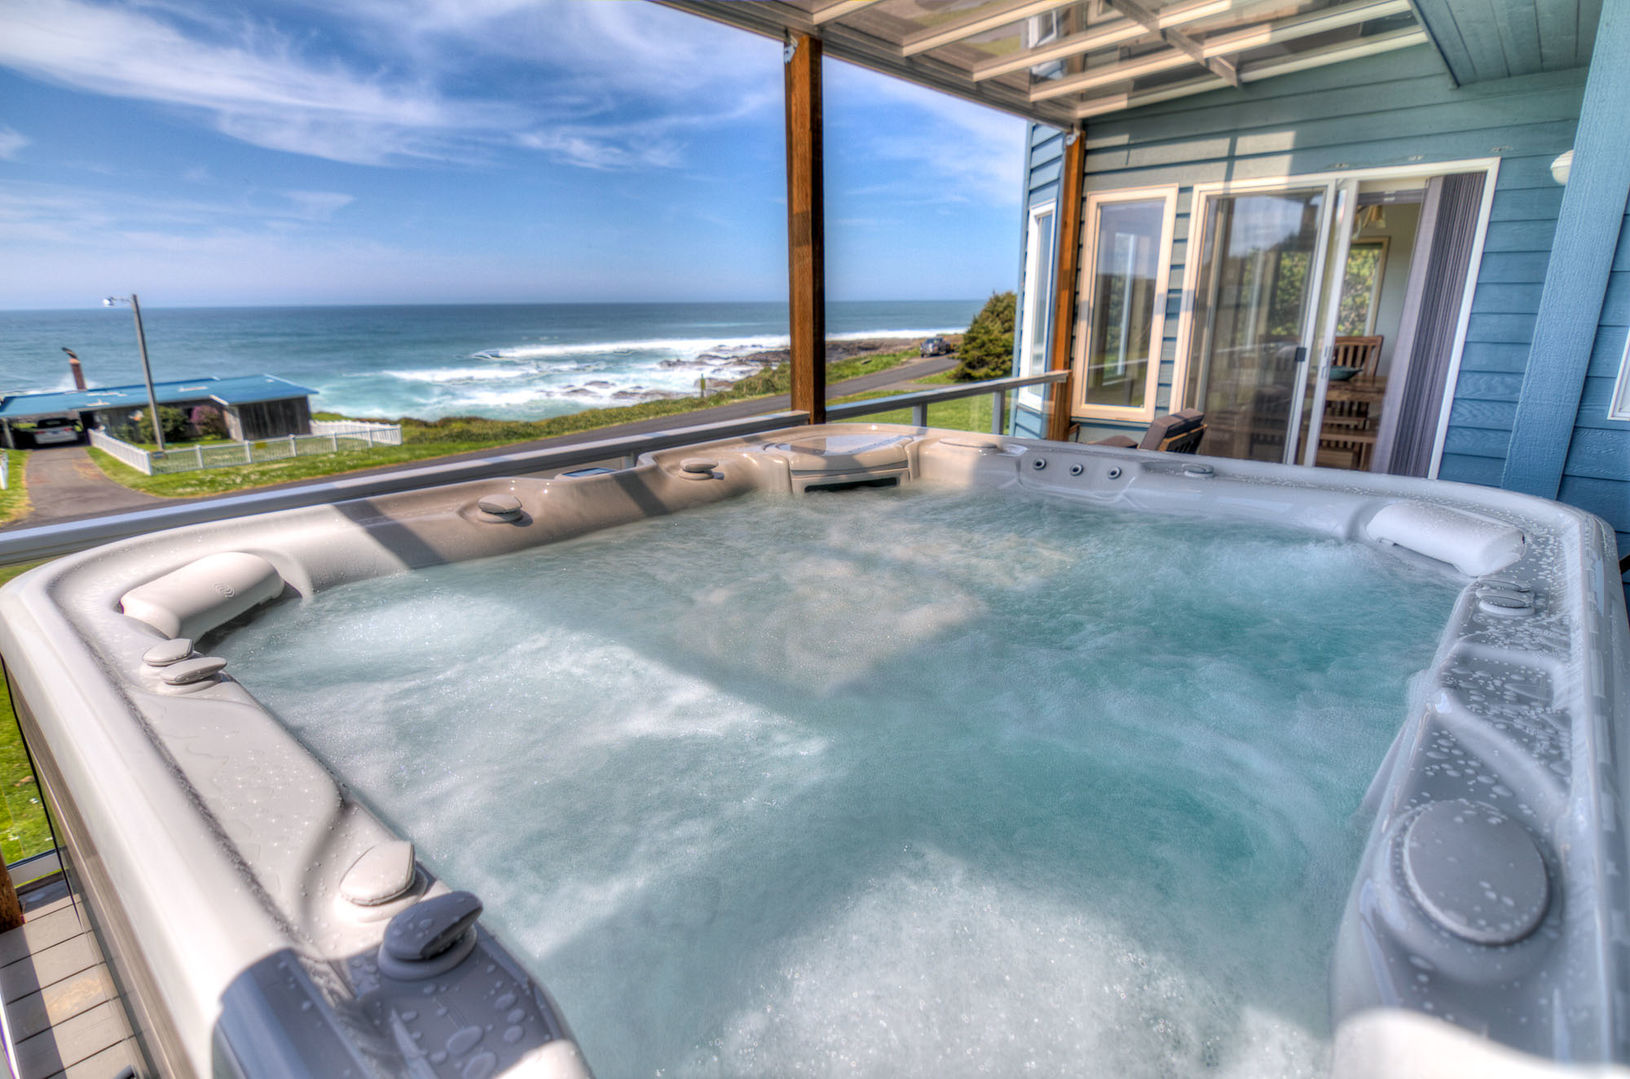 Large hot tub with views on the second floor deck.